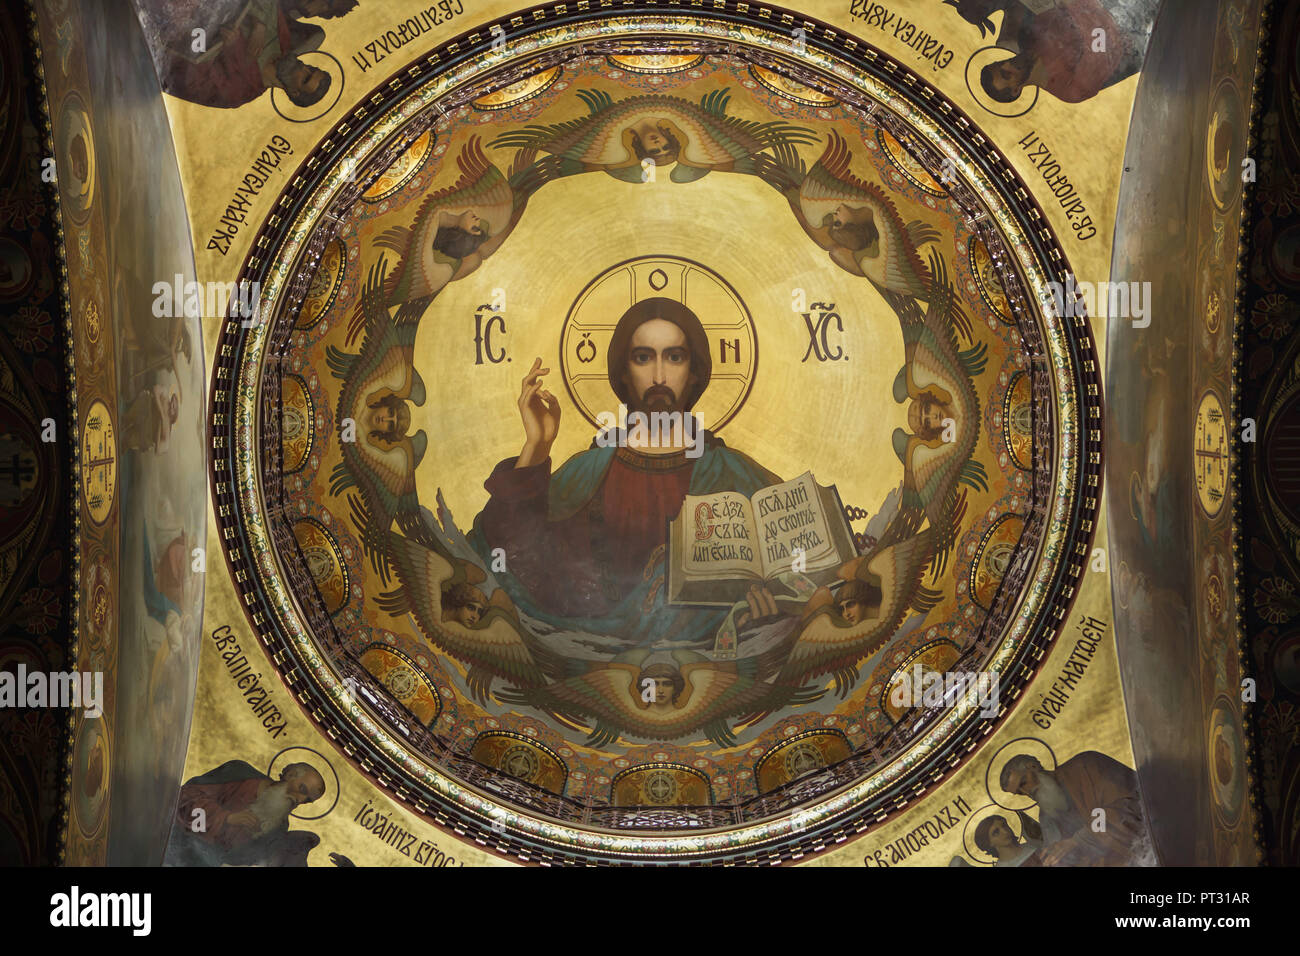 Jesus Christ depicted in the mural painting inside the dome of the Dormition Church on Vasilievsky Island in Saint Petersburg, Russia. The church designed by Russian architect Vasily Kosyakov with mural paintings by Russian painters Nikolay Strunnikov and others was built in 1895-1903. Stock Photo